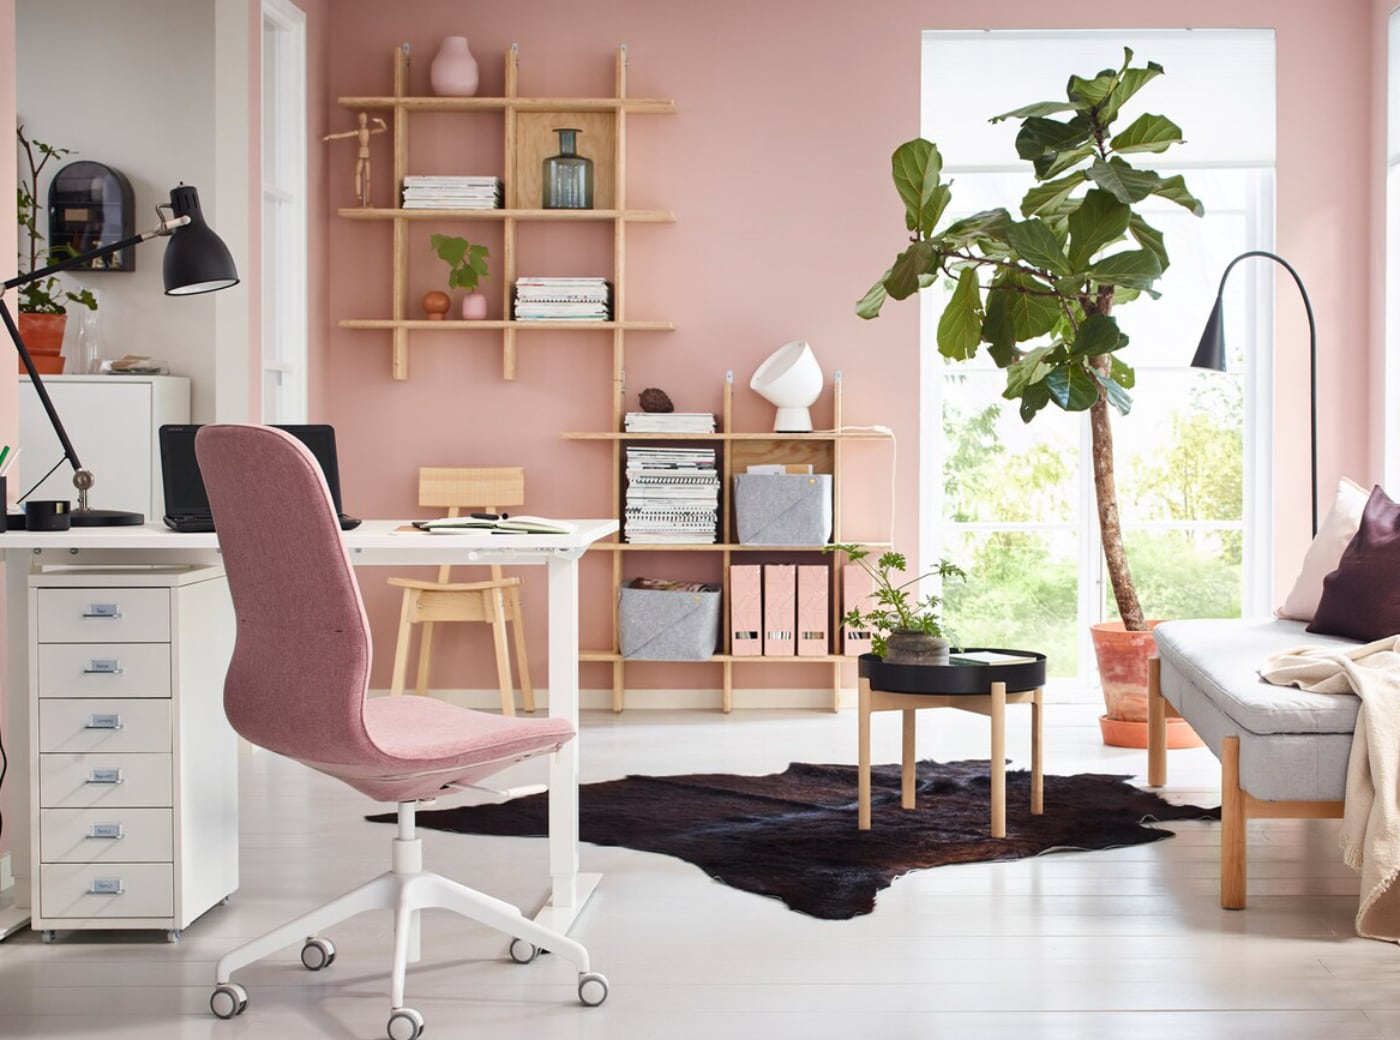 Small home office, with a LINNMON/KRILLE table in white with legs on castors, some shelves, storage cabinets and a sofa bed.